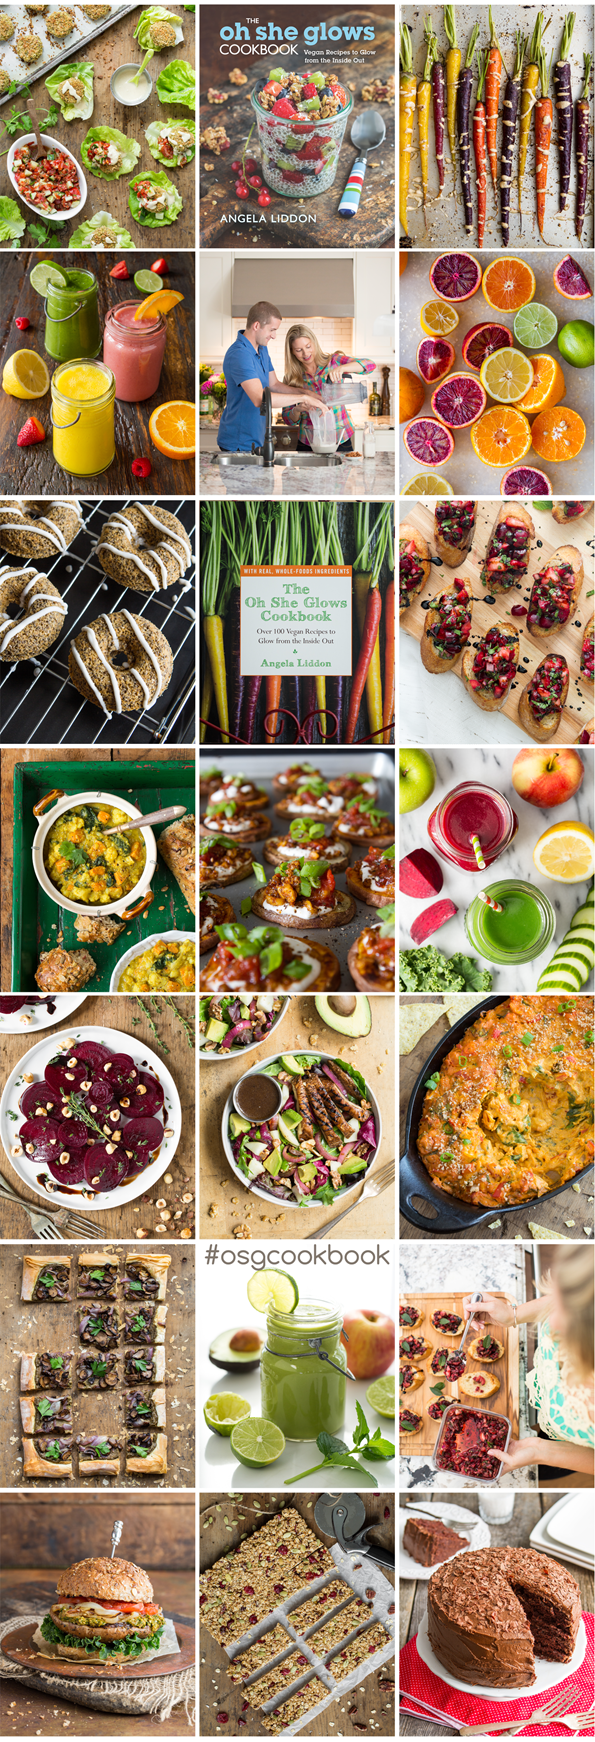 theohsheglowscookbook   The Oh She Glows Cookbook Launch Day + A Special Sneak Peek!